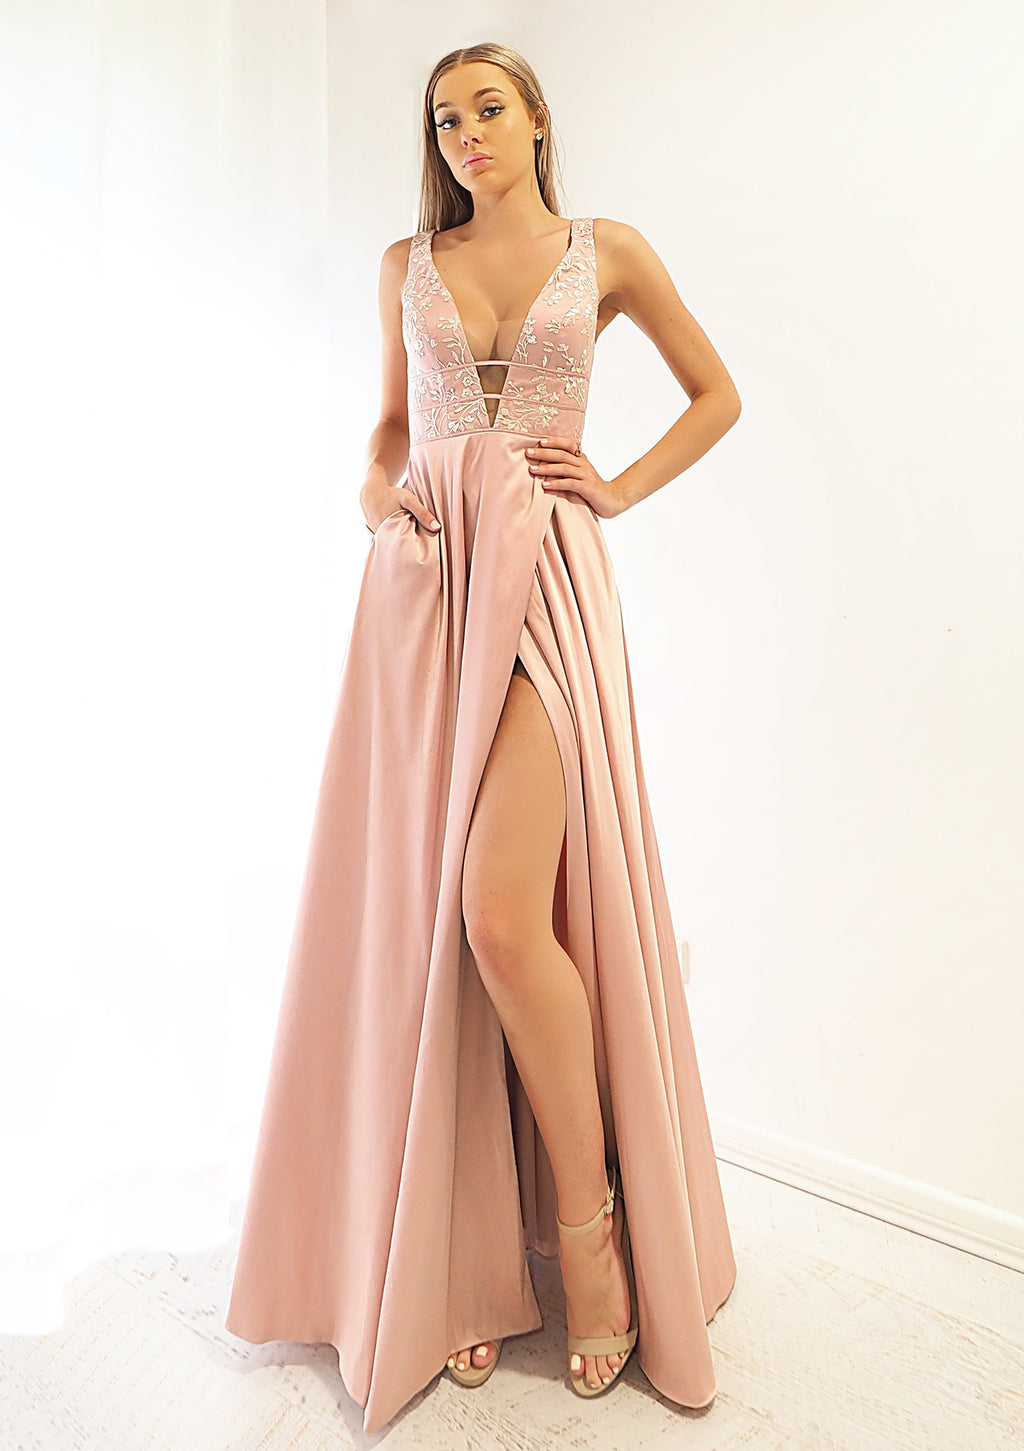 Miriam muted Pink Fondue satin dress with deep V neck